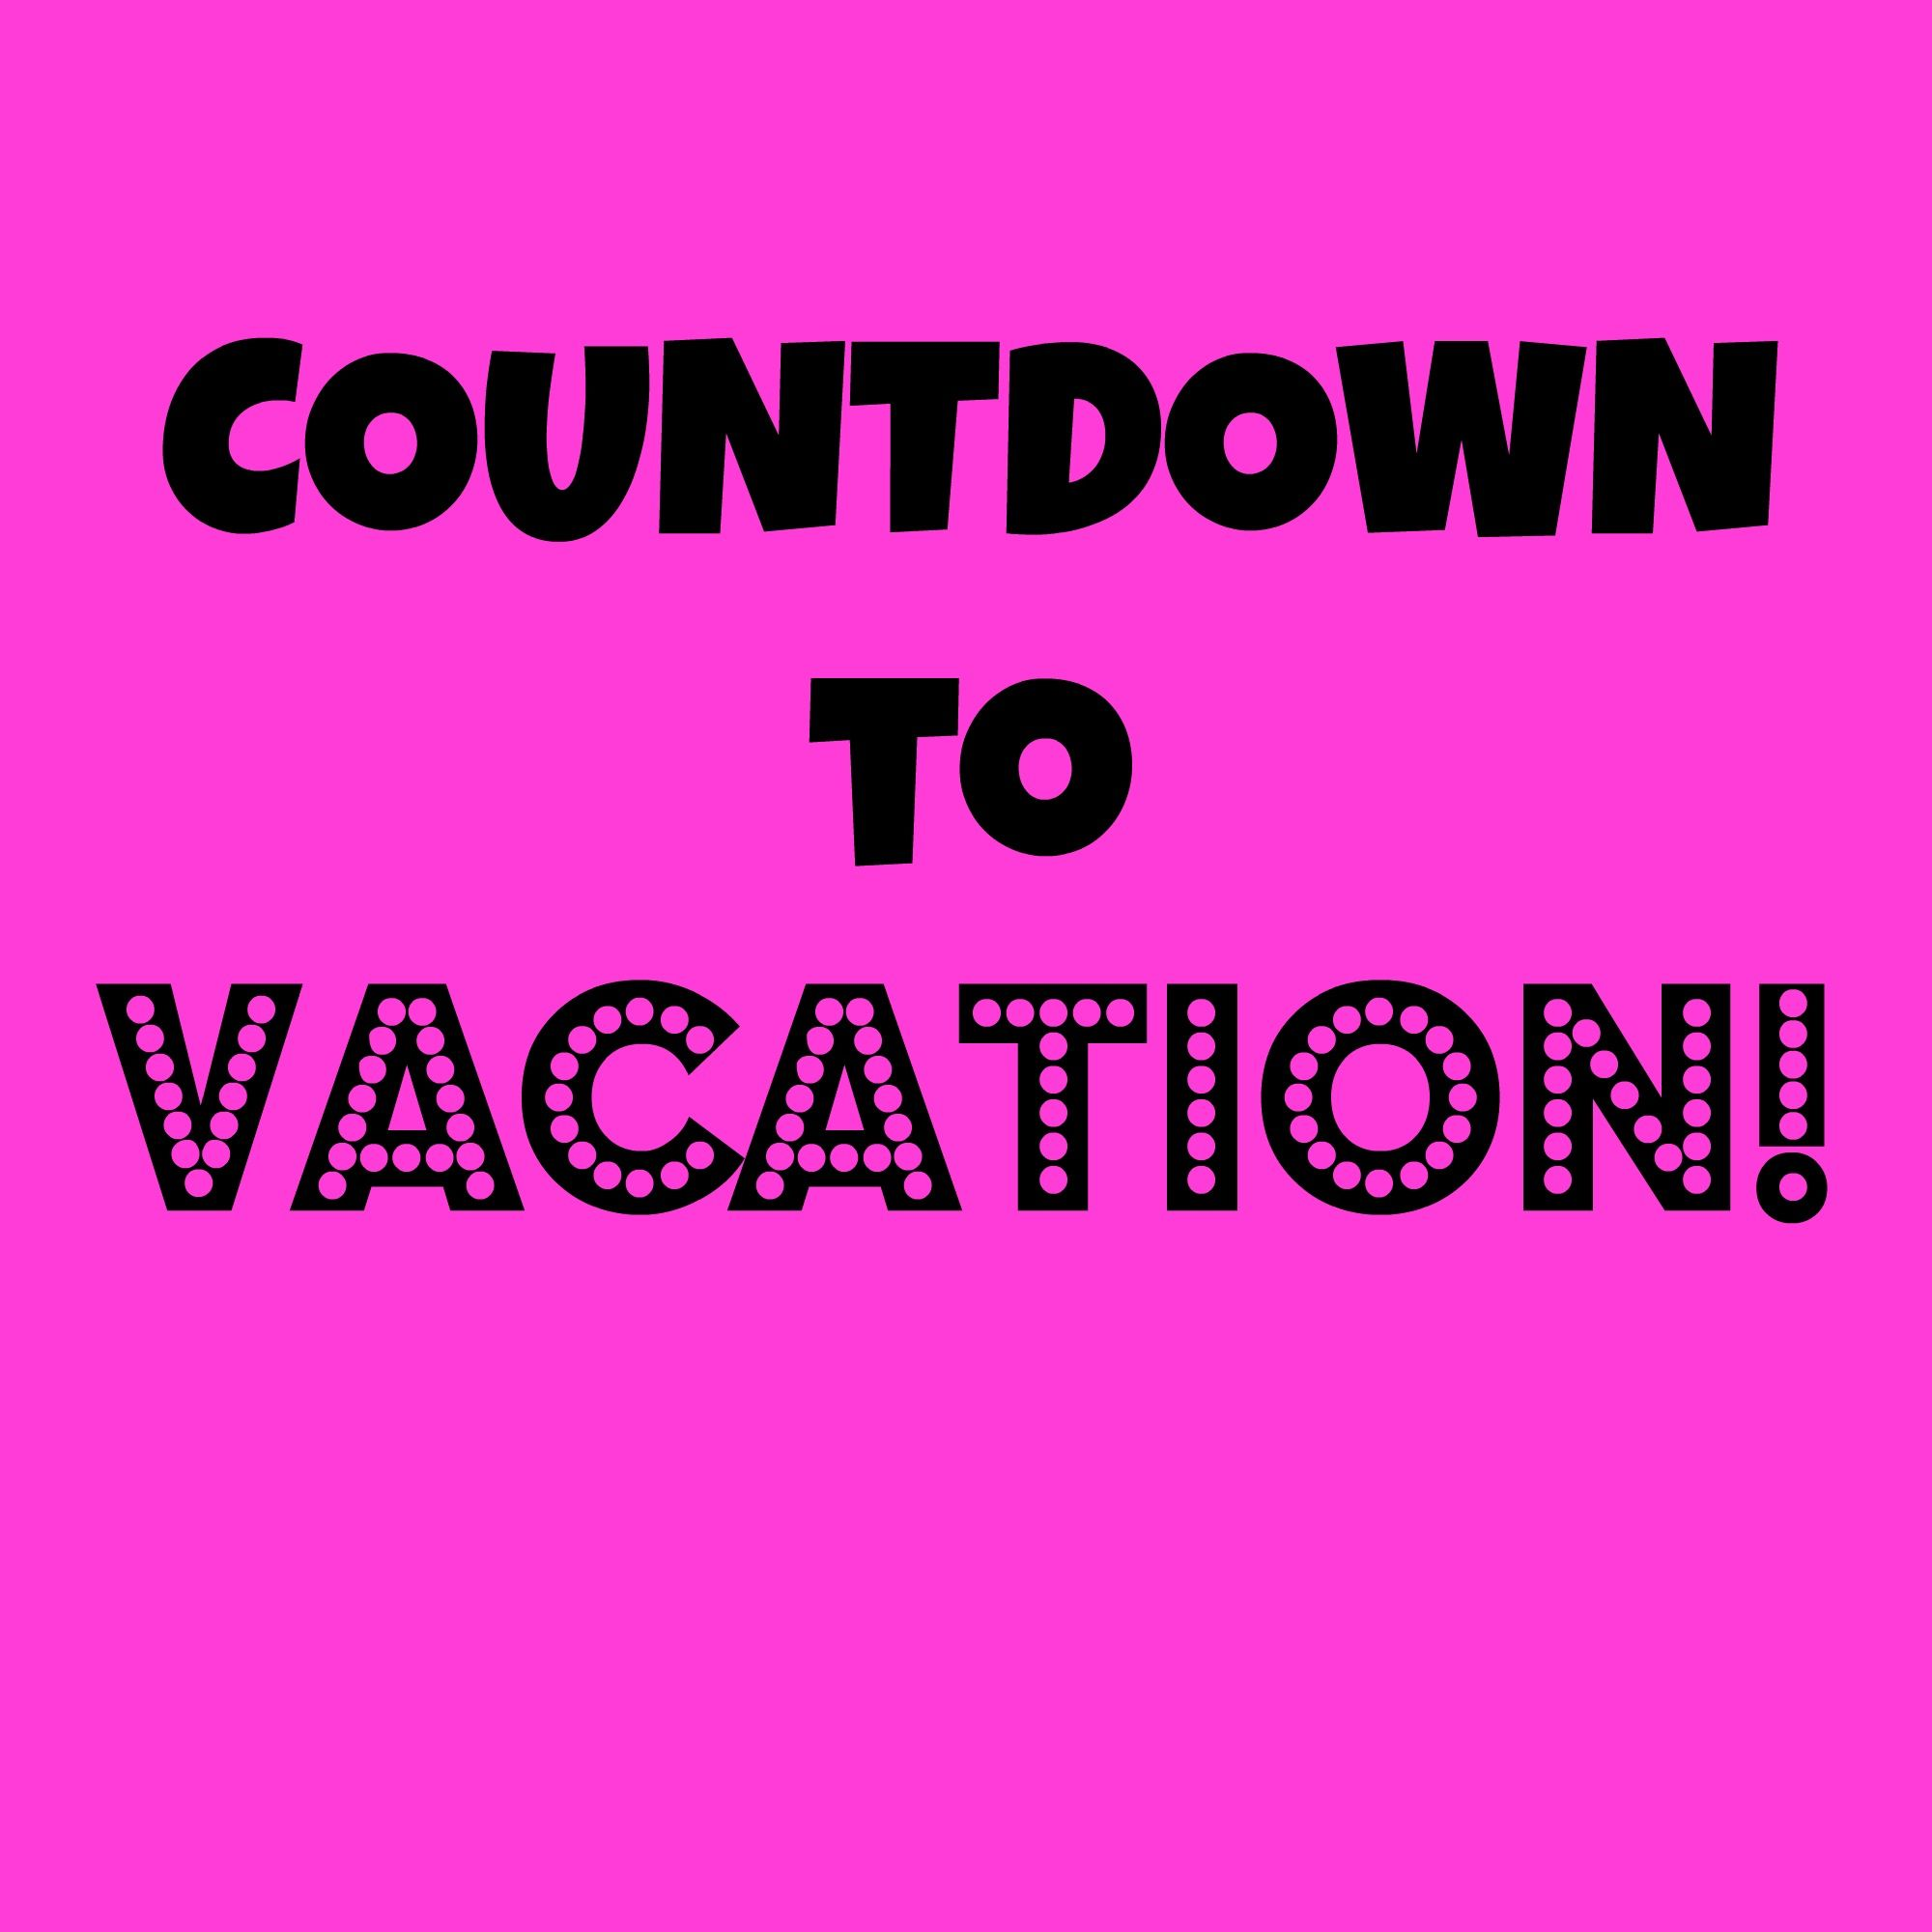 Countdown To Vacation 3 Days Vacation Countdown Quotes Countdown Quotes School Quotes Funny